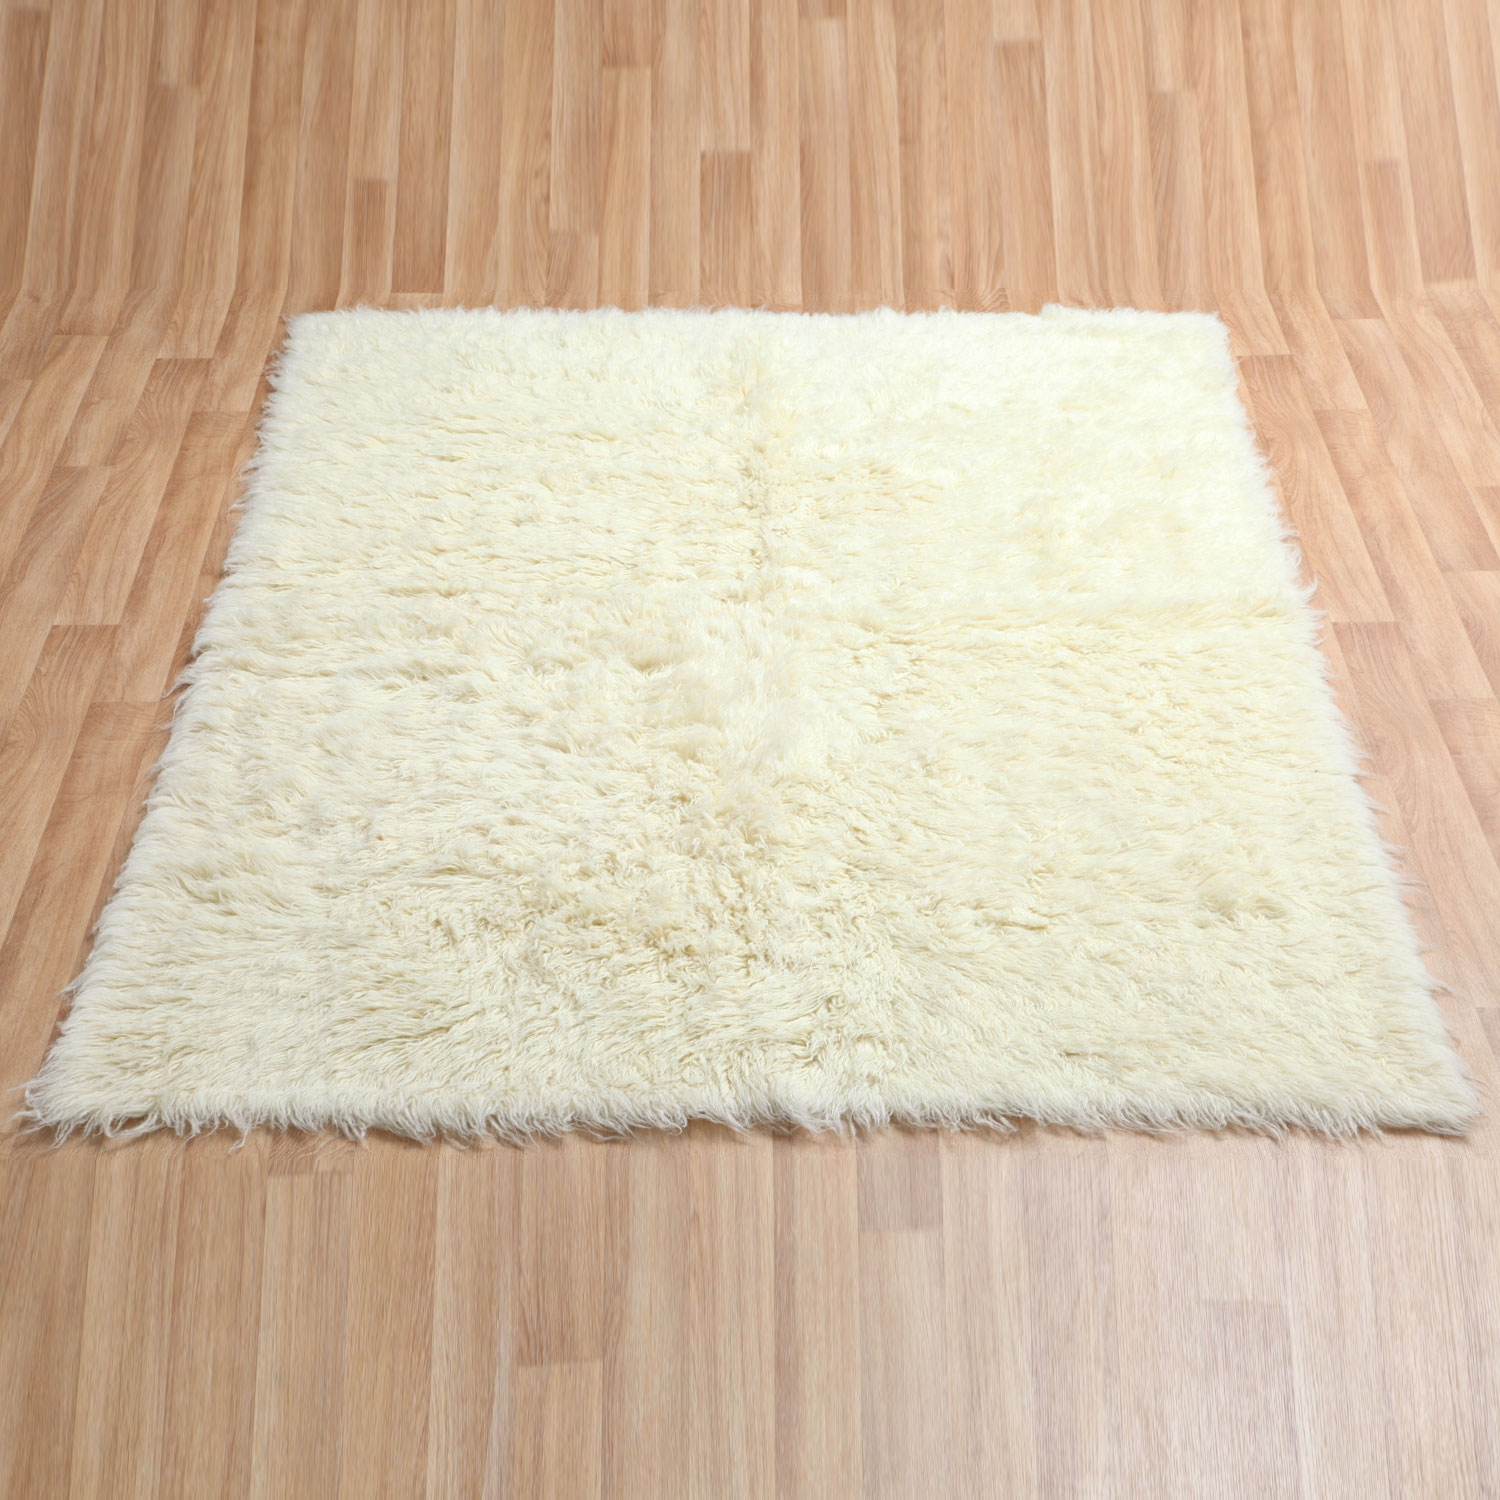 Large Wool Rugs Home Remedies For Cleaning Wool Rugs Home With Large Wool Rugs (Image 8 of 15)